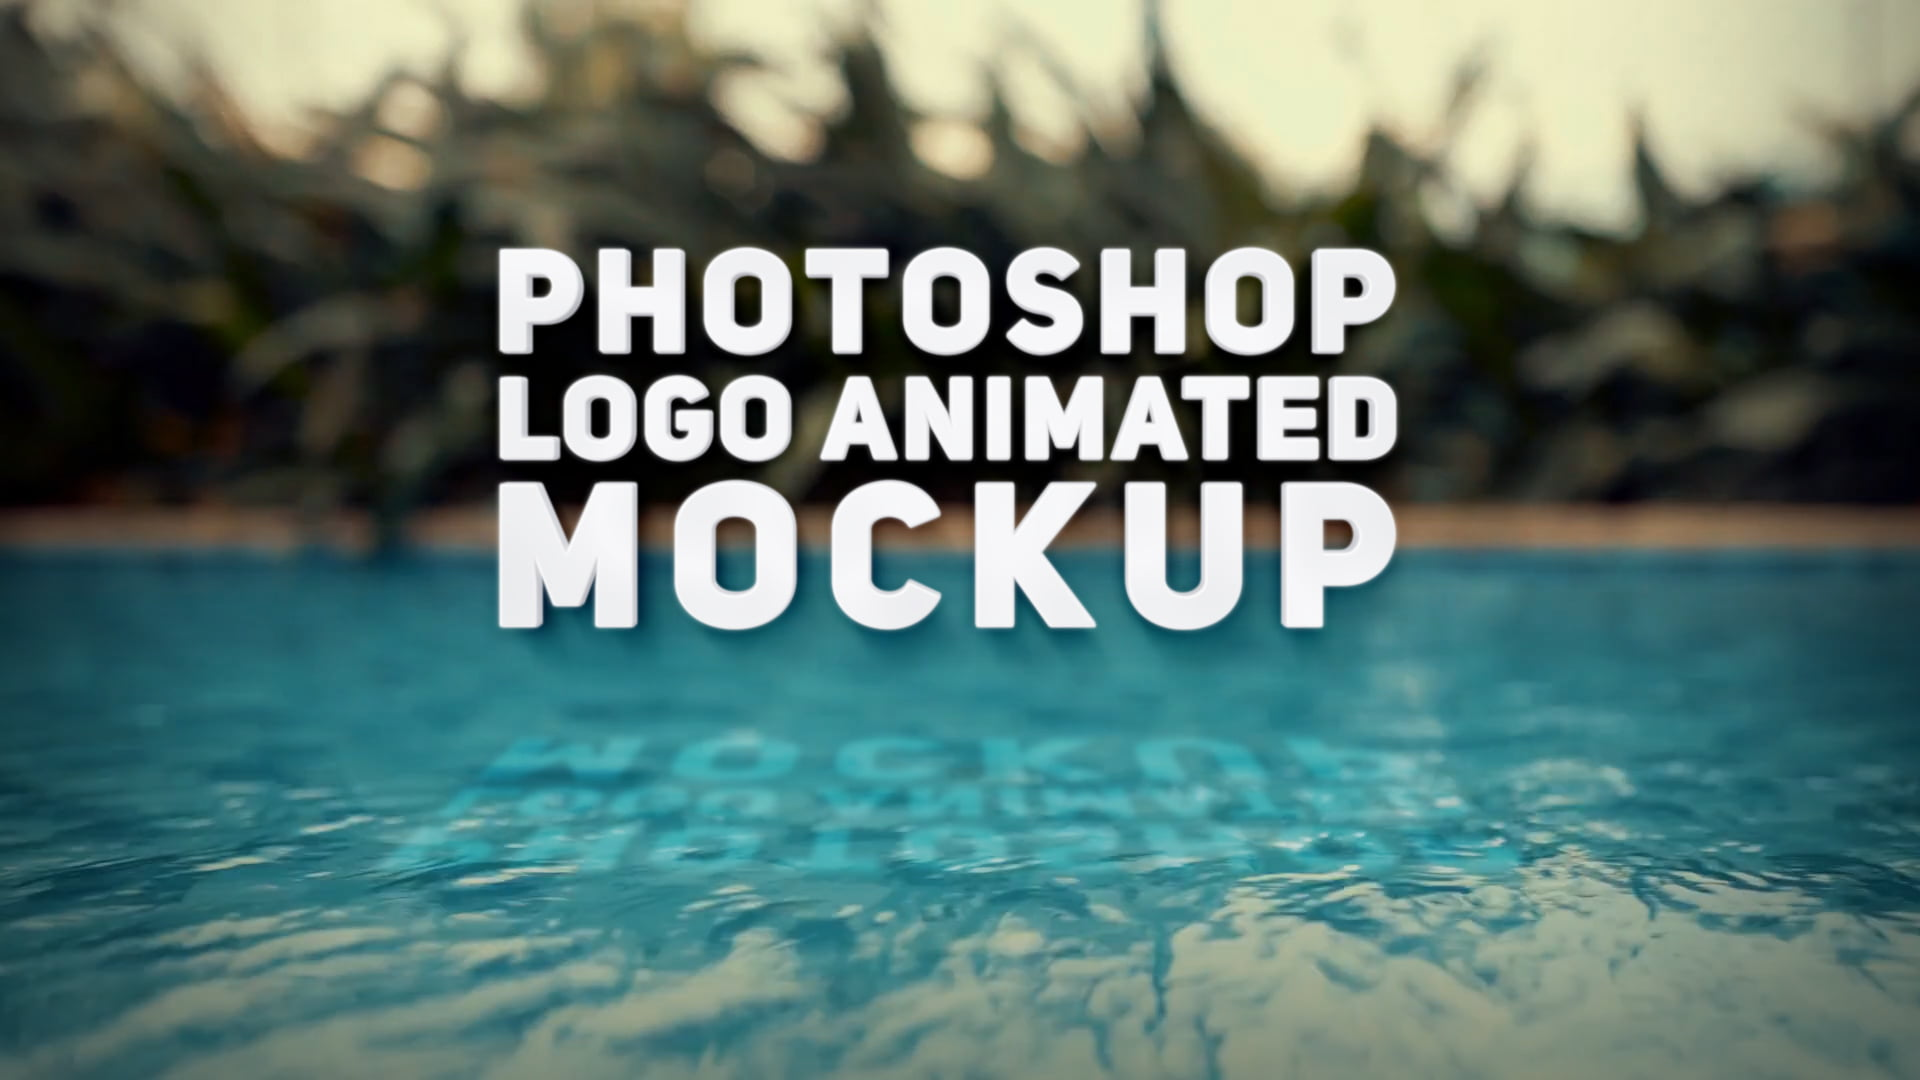 Photoshop-3D-Logo-Animated-Mockup